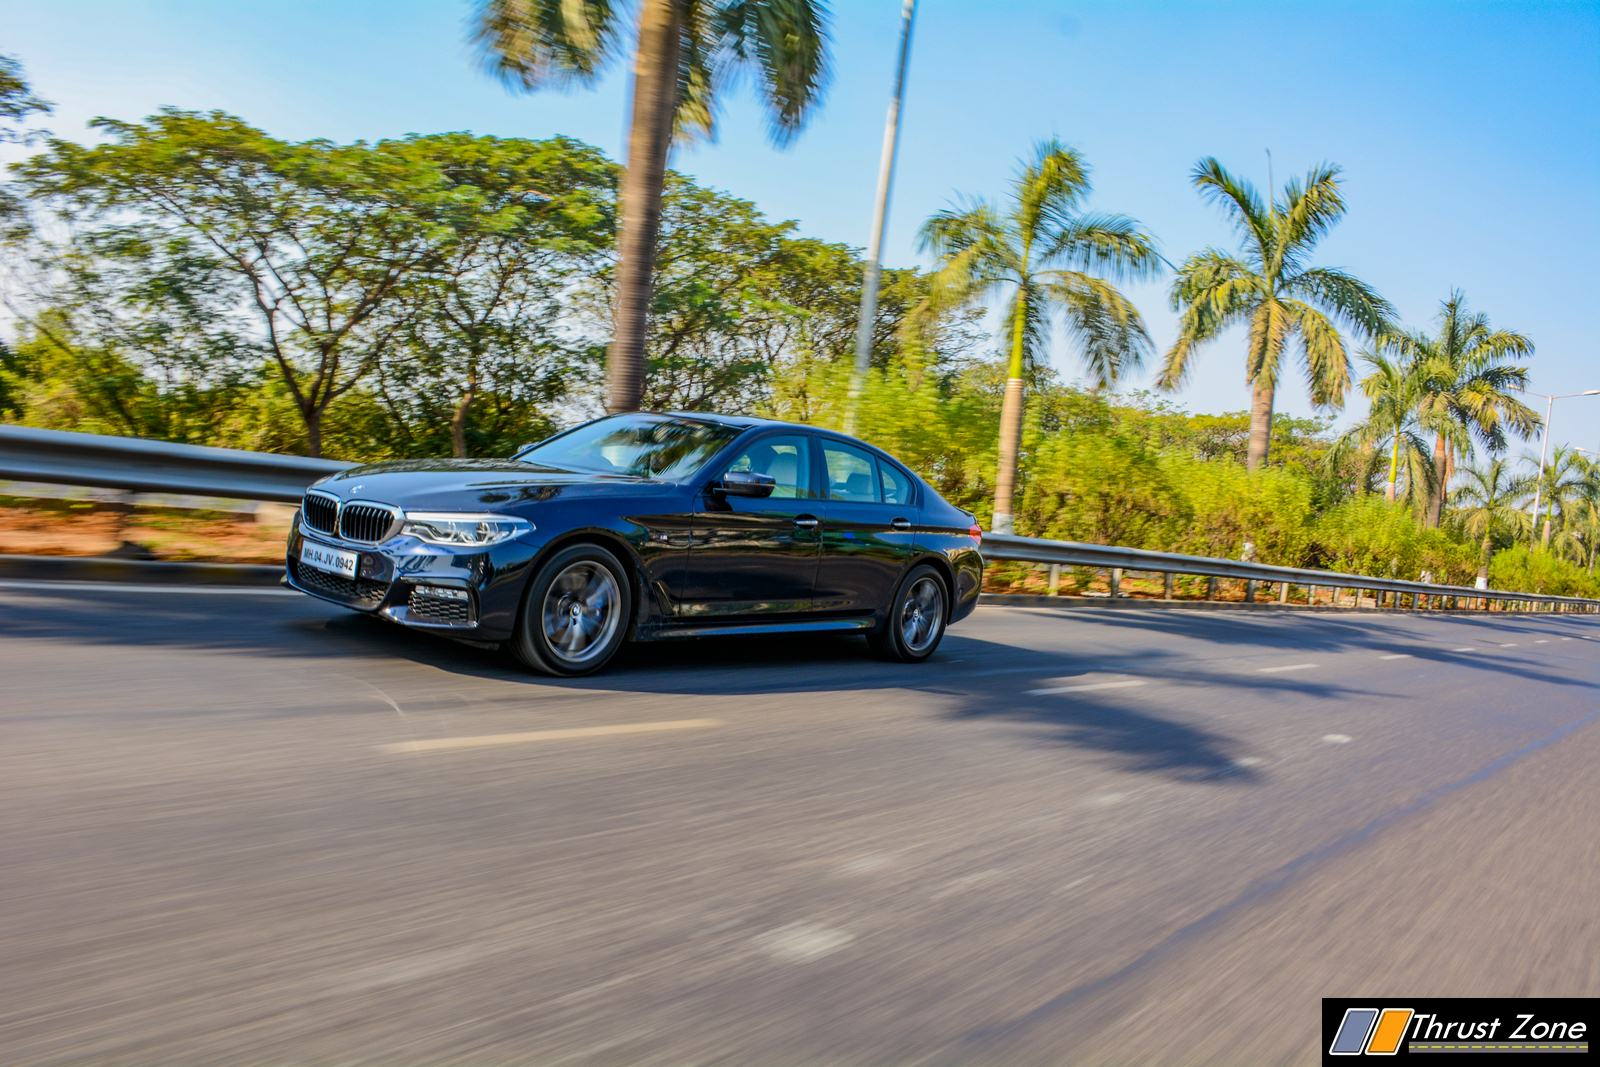 http://www.thrustzone.com/wp-content/uploads/2019/01/2018-BMW-530d-India-Review-4.jpg